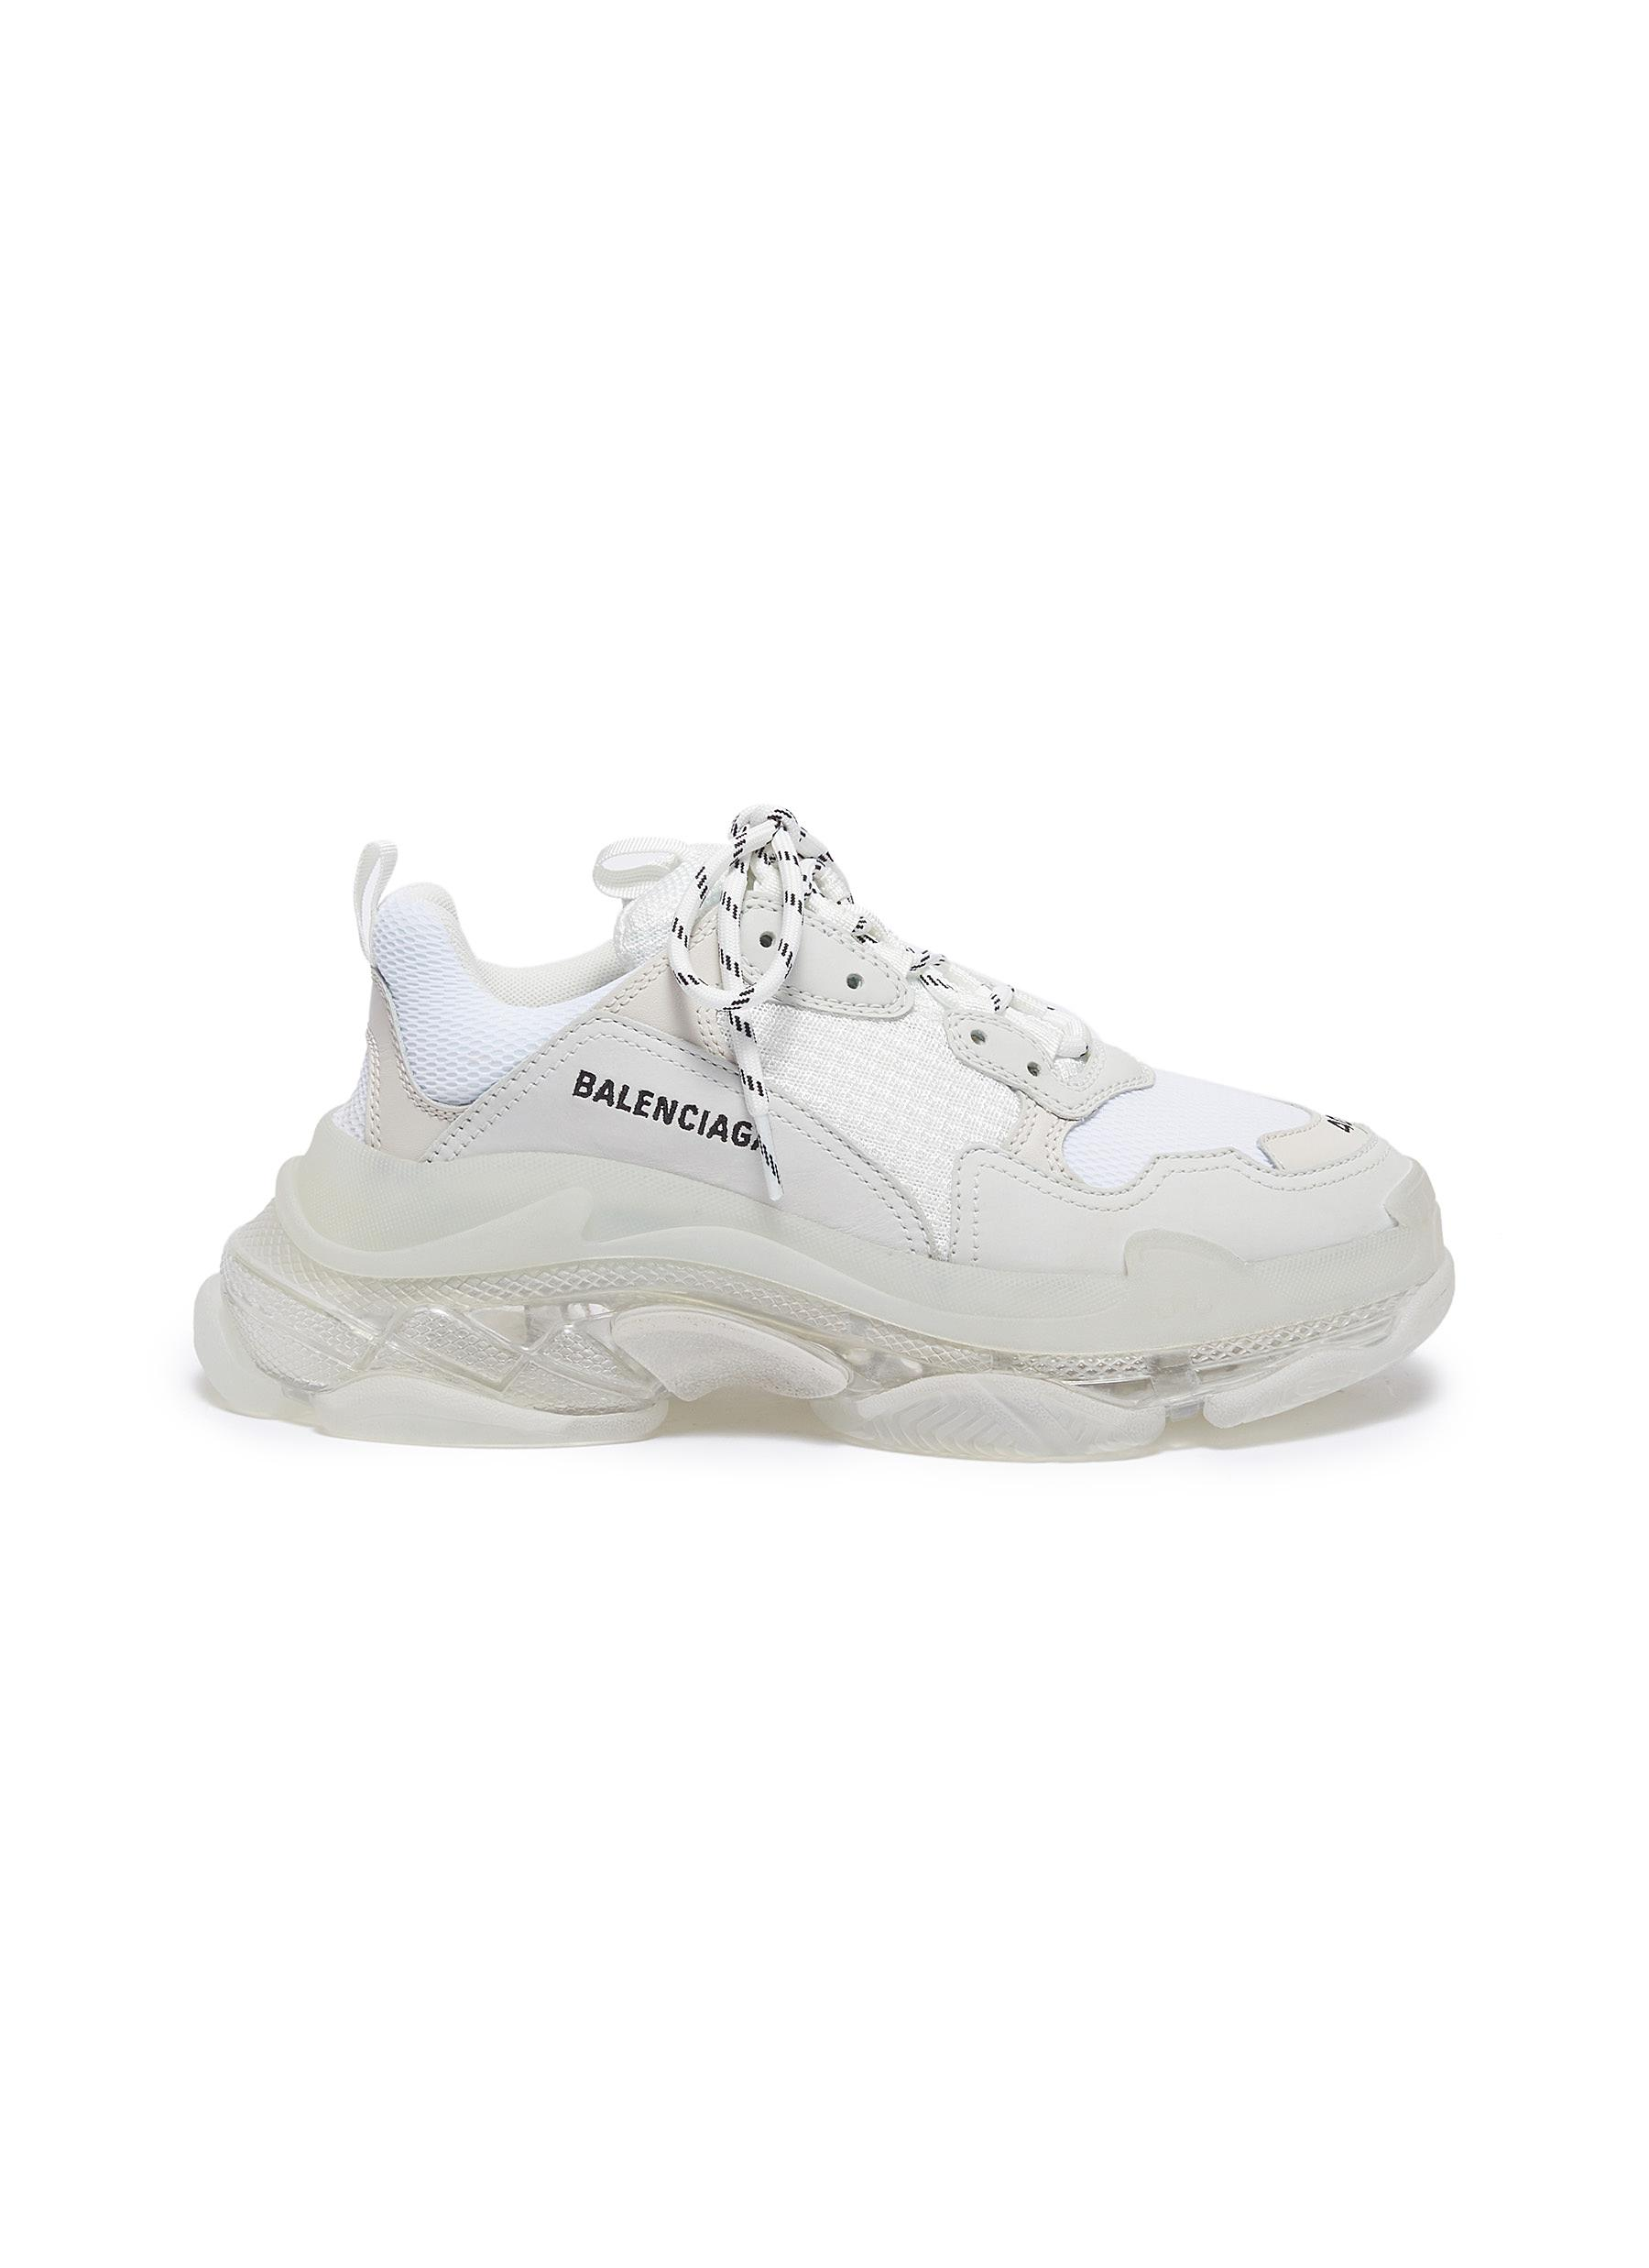 Triple S Clear Sole stack midsole mesh sneakers by Balenciaga